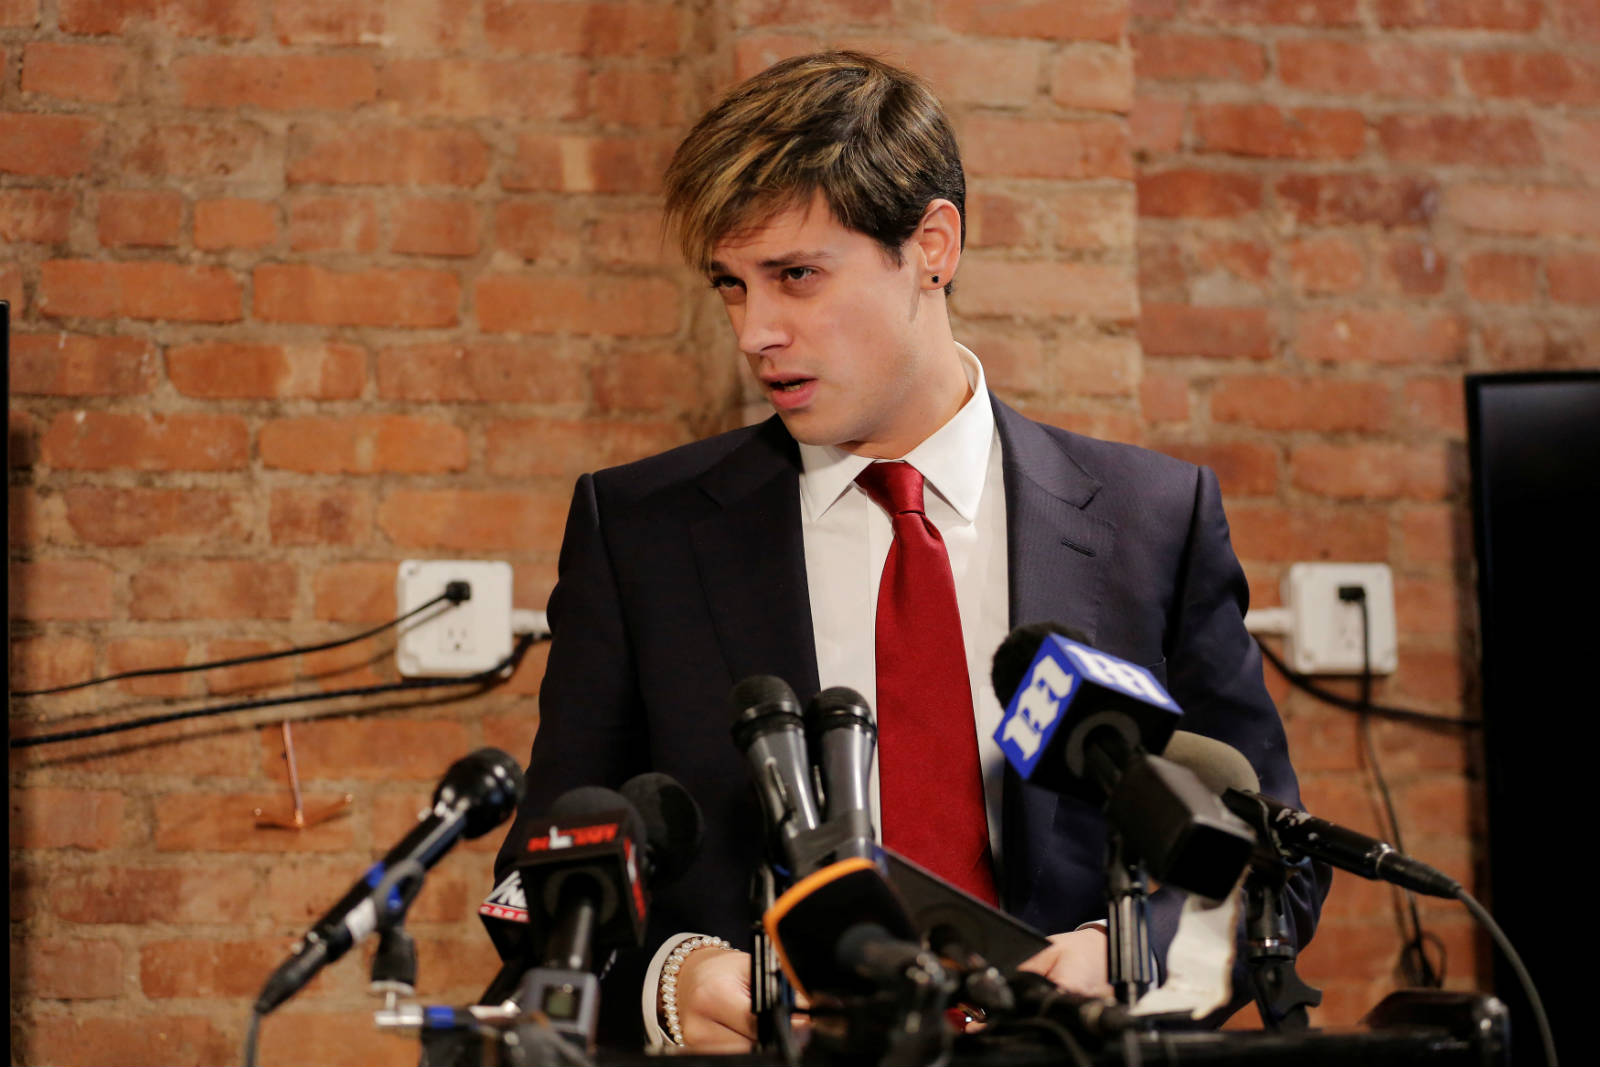 Milo Yiannopoulos 圖片來源:路透社